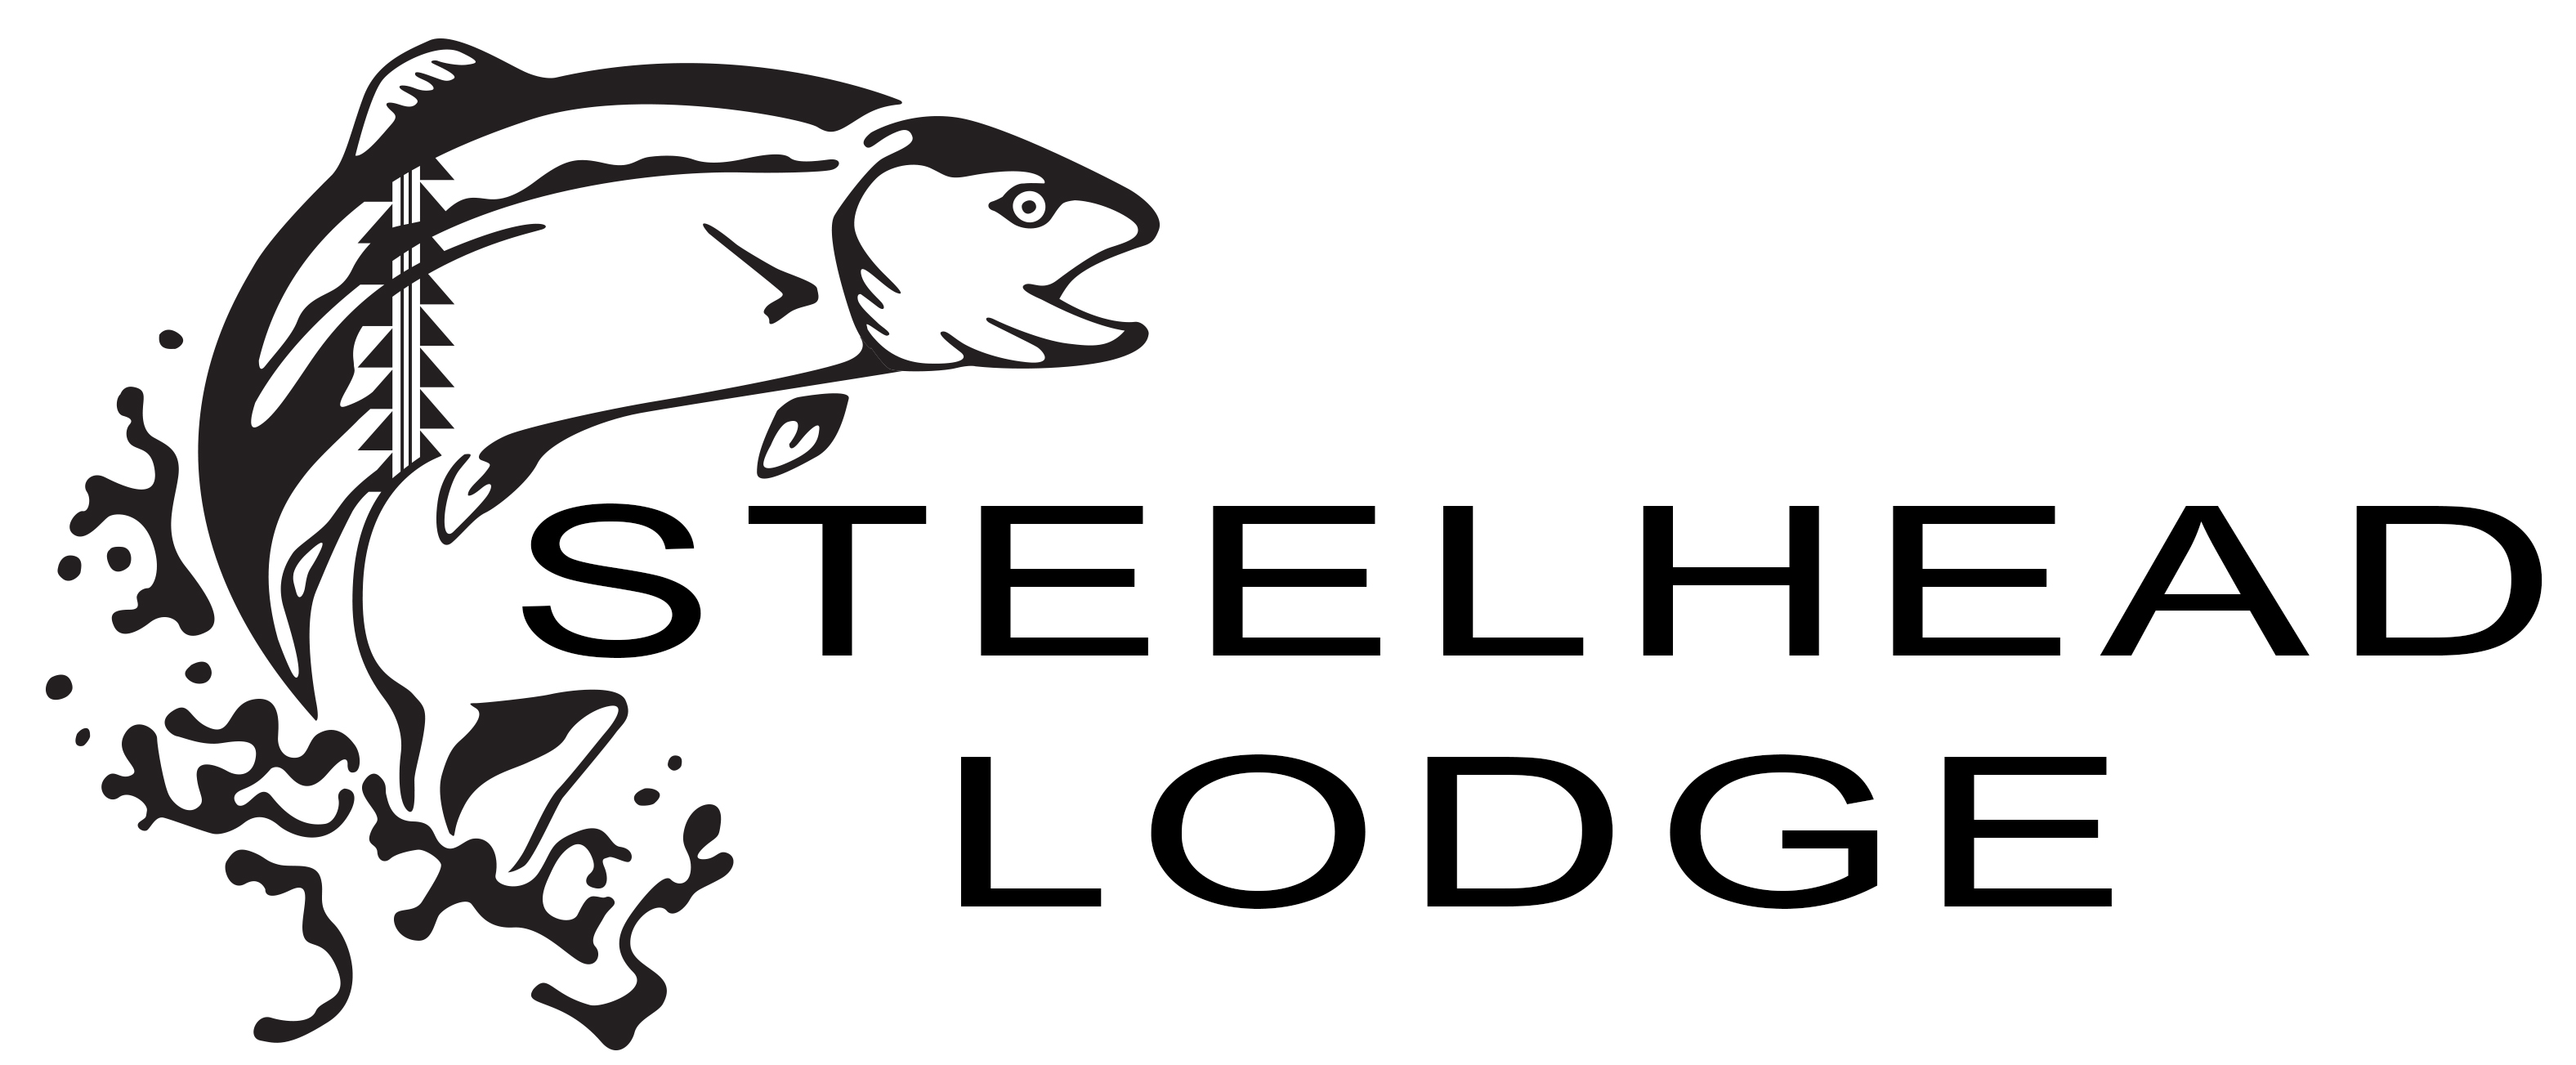 STEELHEAD LODGE